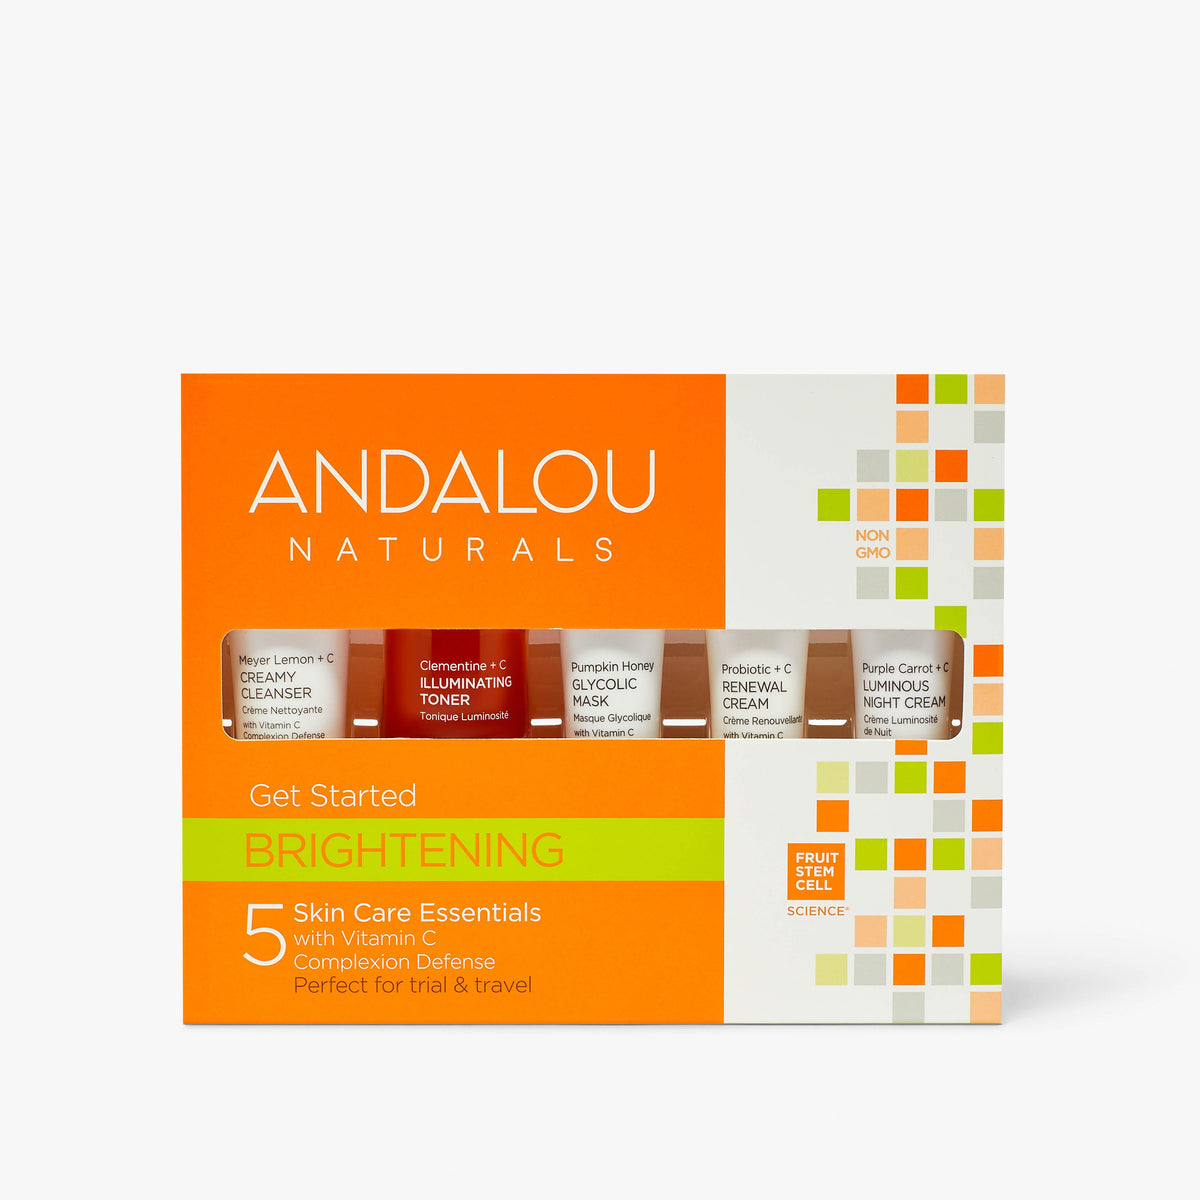 Andalou Naturals Brightening Get Started Kit packaging